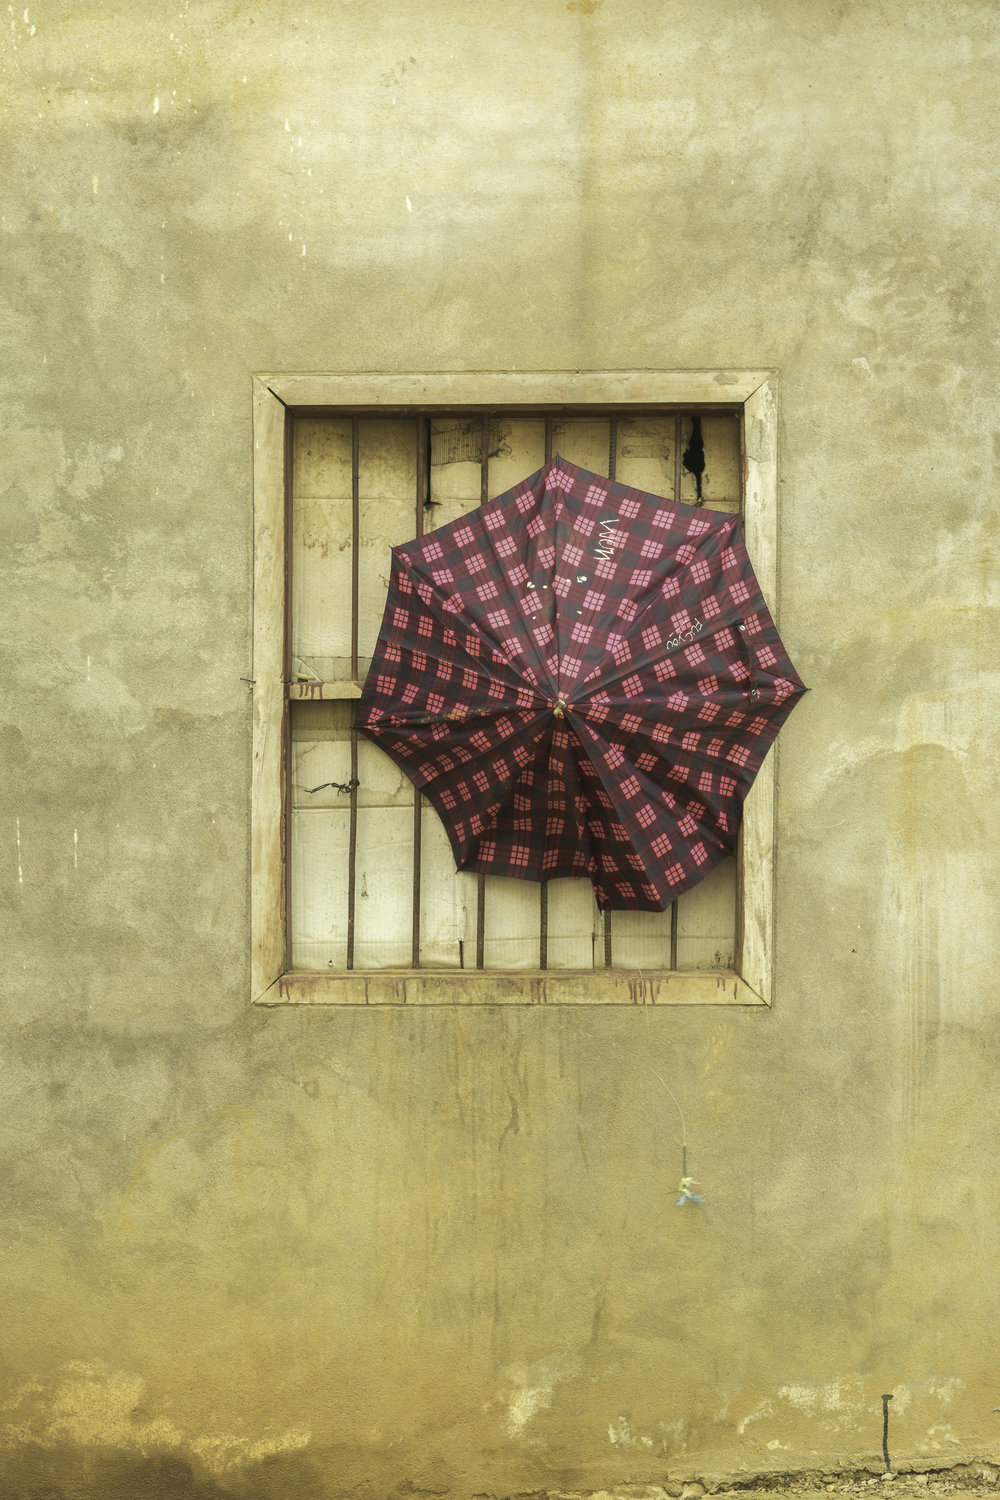 Lonely-umbrella-windows-Laos.jpg